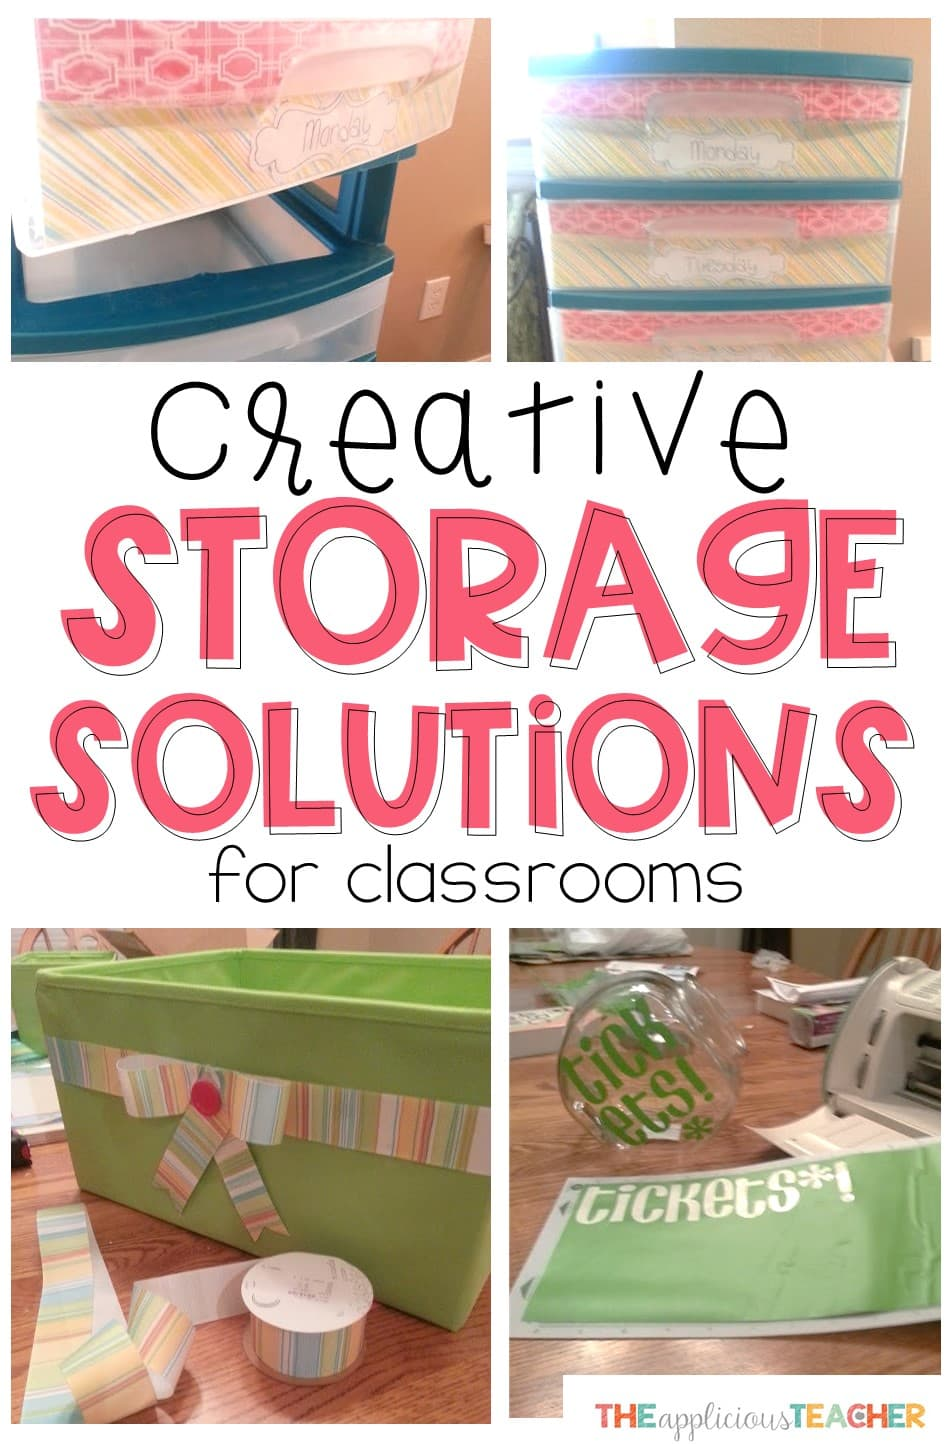 these creative storage solutions are perfect for classroom who lack built in storage! Includes step by step instructions on how to make them work in any classroom!